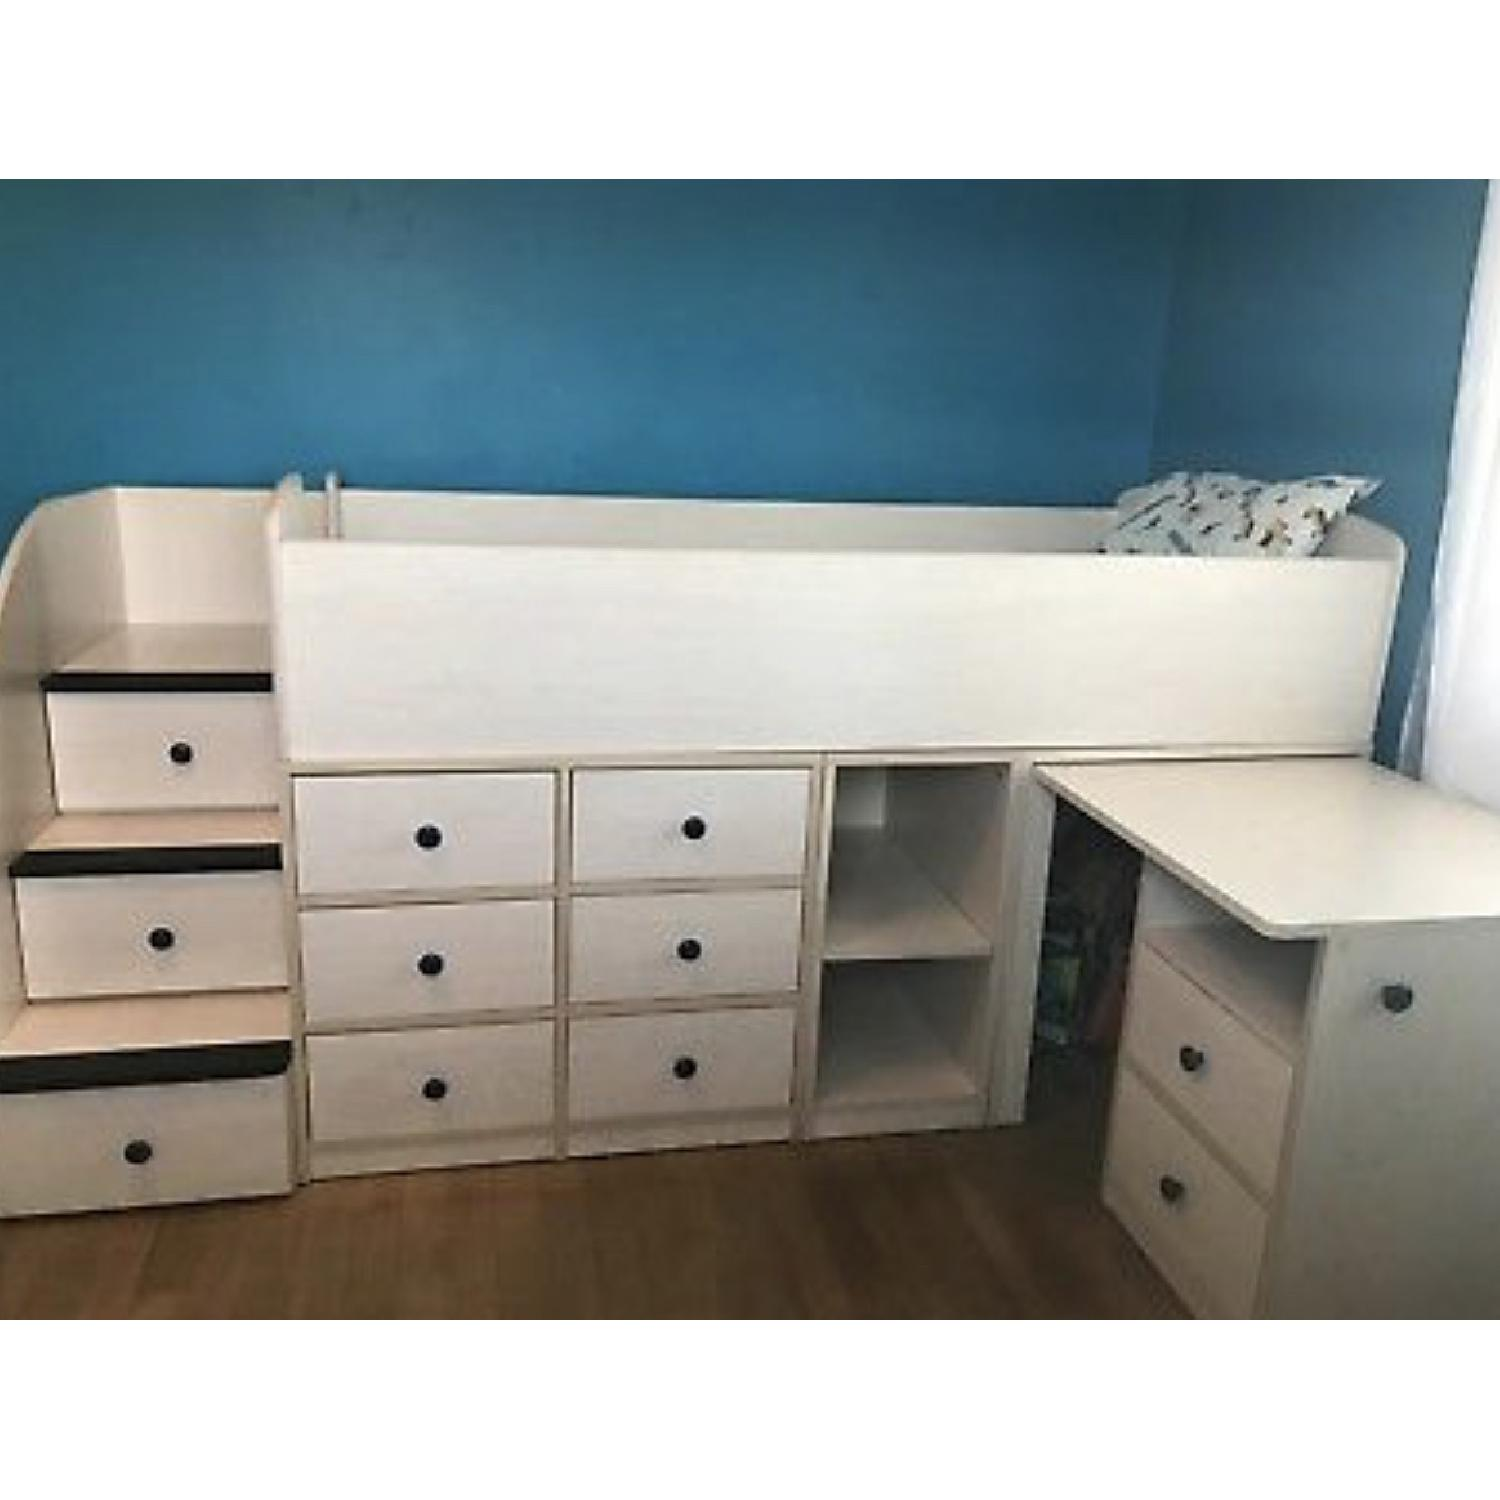 Natural Wood Twin Size Loft Bed w/ Desk & Storage Drawers - image-2